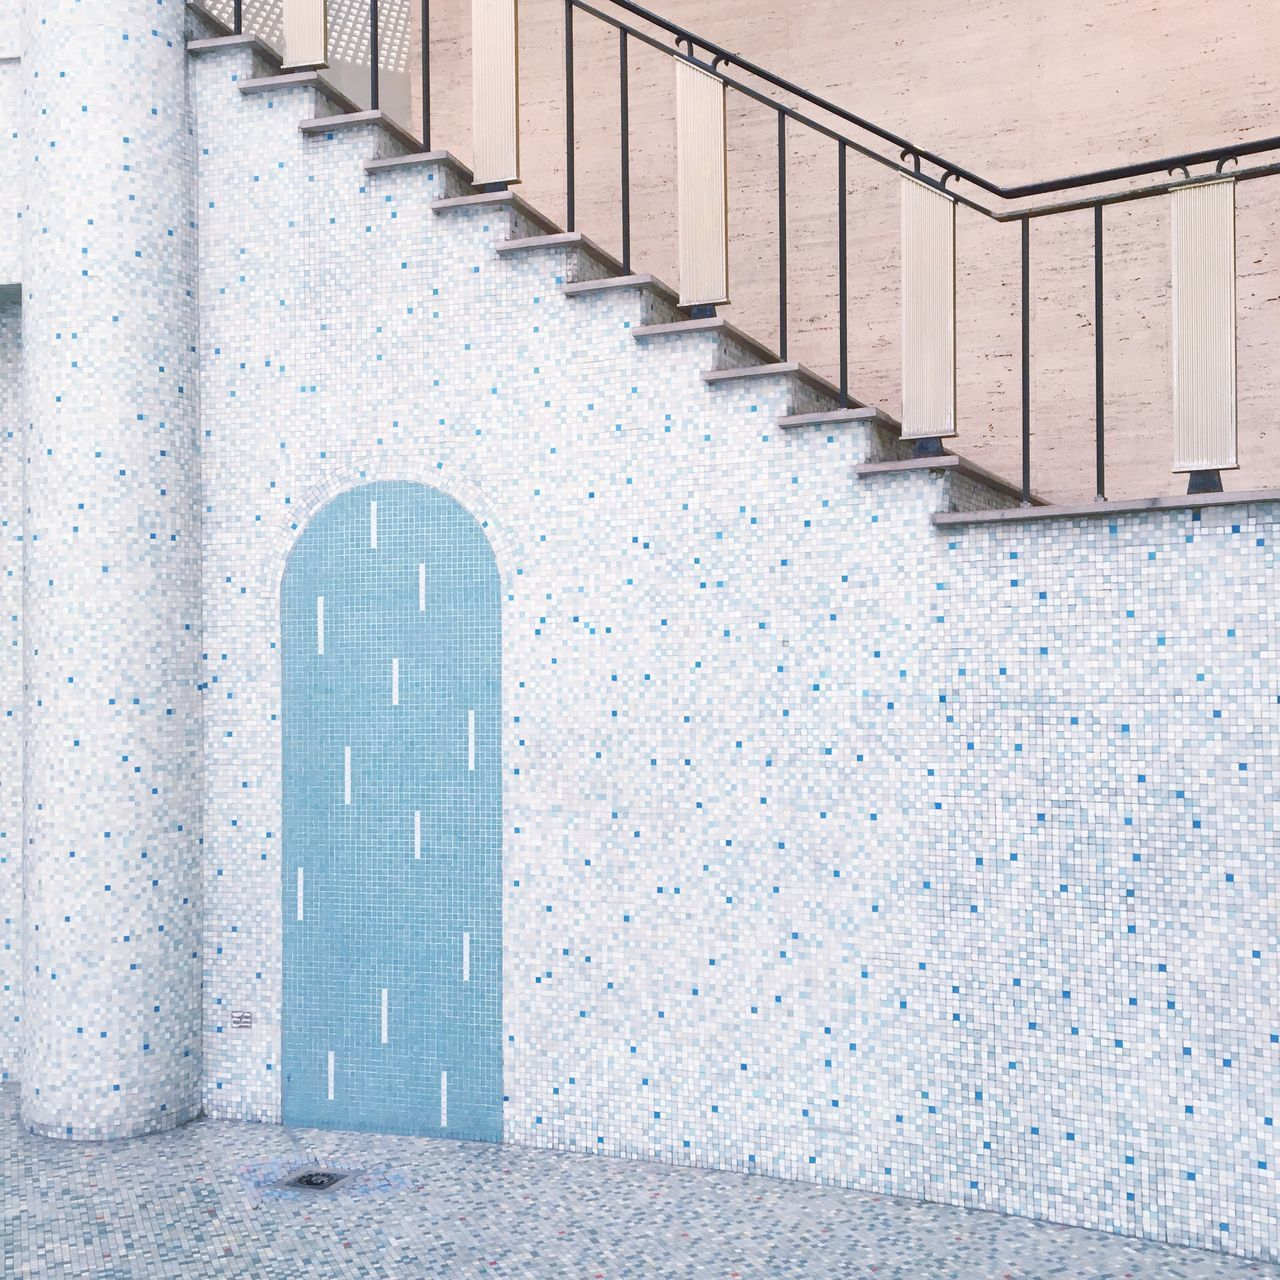 Mosaic wall by steps